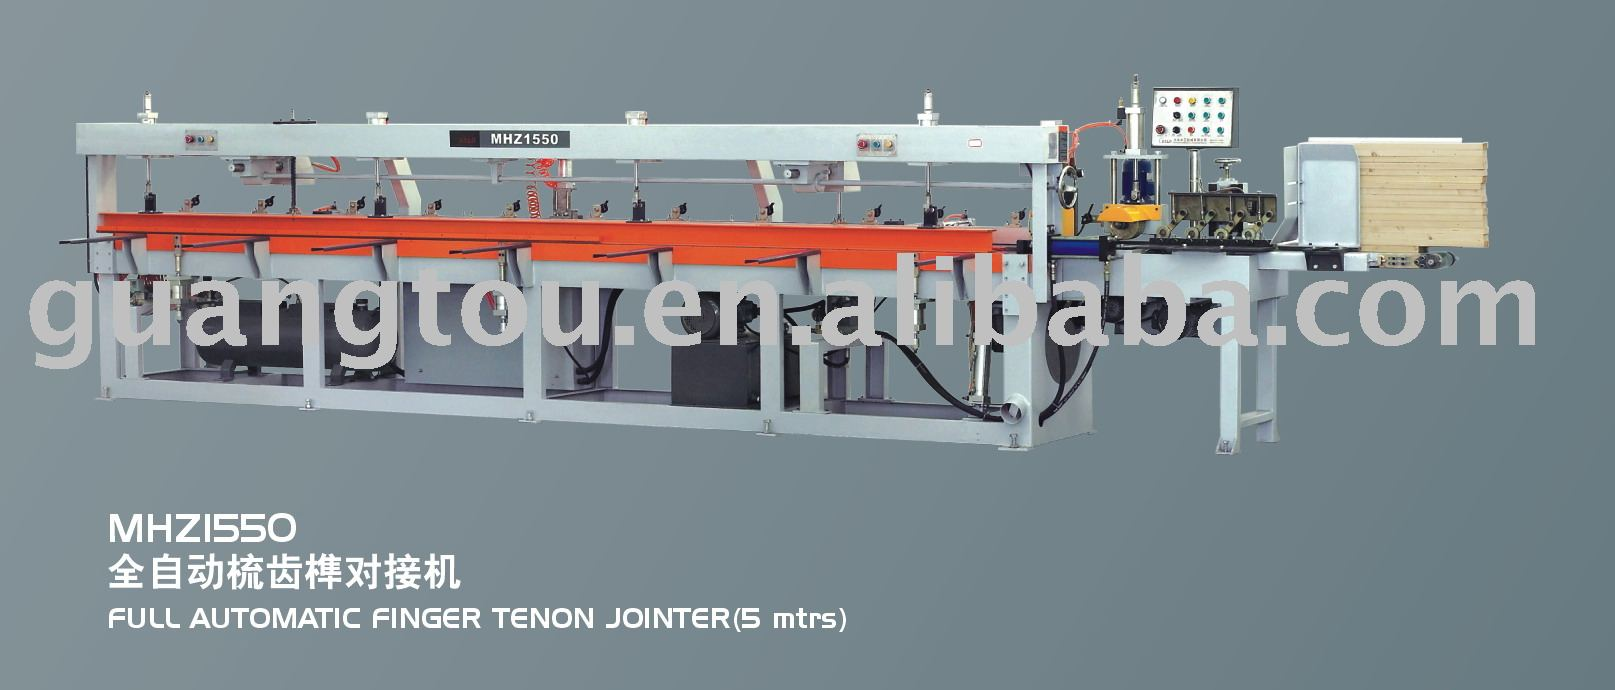 Full Automatic Finger Tenon Jointer (5 mtrs)